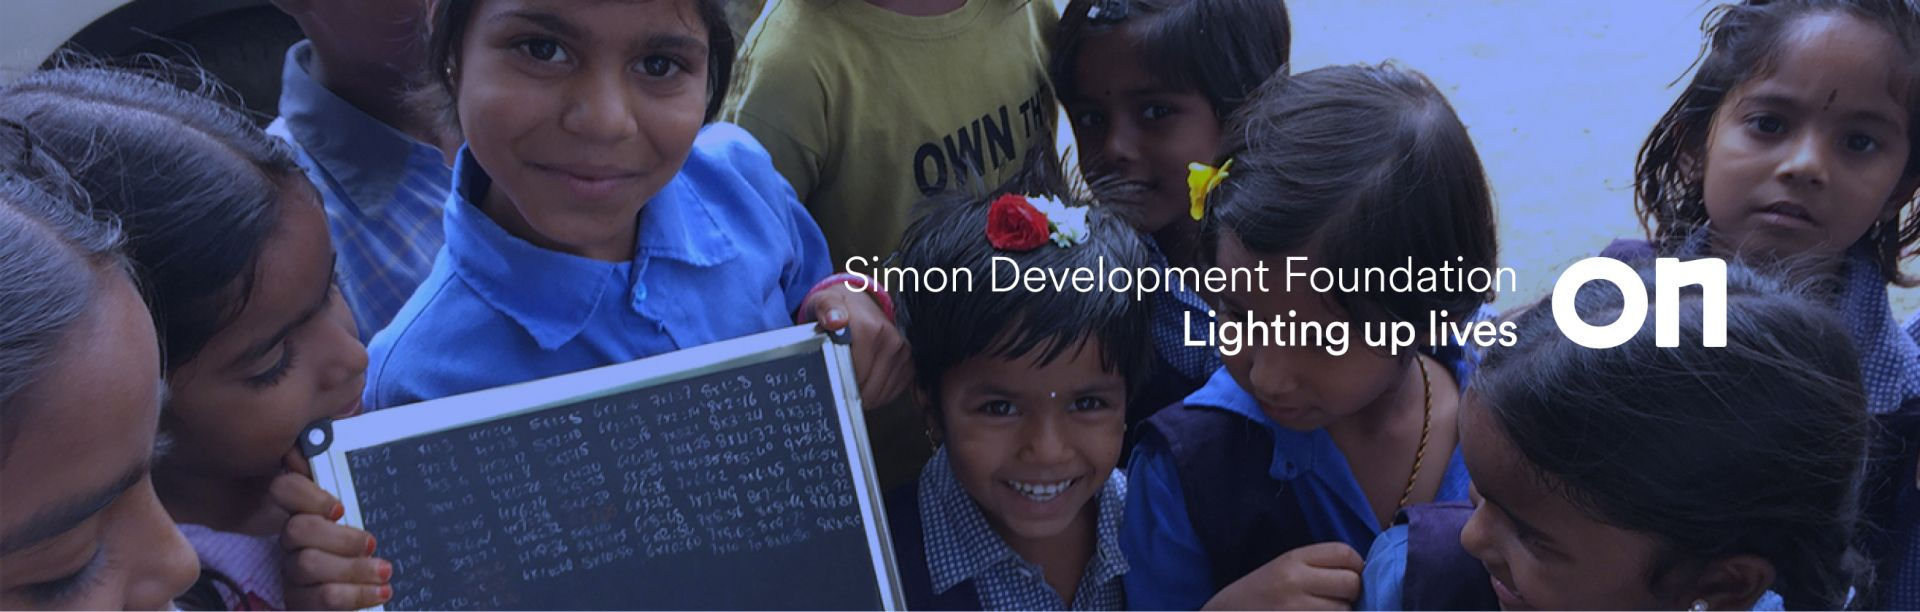 Simon Development Foundation